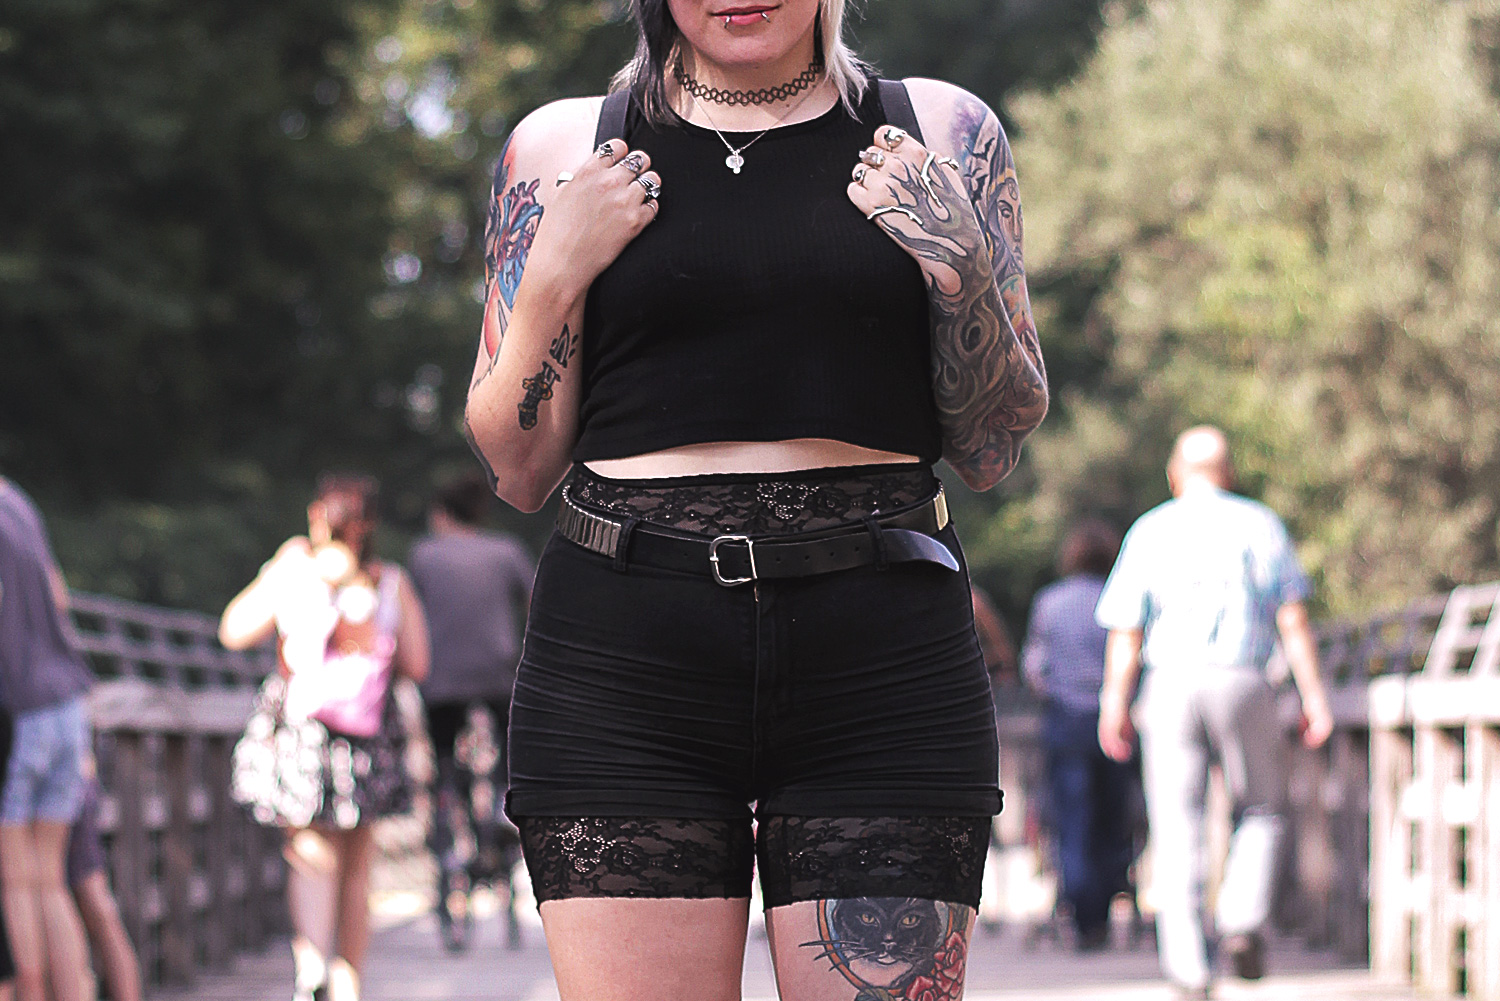 schwarz, shorts, sommer, highwaist, crop top, primark, h&m, ballerinas, schnürschuhe, rucksack, pins, pingame, flauschig, natelledrawsstuff, gürtel, nieten, alternative, alternative fashion, alternative girl, alternative mode, altgirl, berlin, berlin fashion, berlin fashion blogger, berlin mode, berlin streetstyle, blogger, fashion blogger, girls with piercings, girls with tattoos, grunge, grunge fashion, grunge mode, mode, Punk, punk fashion, punk mode, punkgirl, punkmädchen, scenehair, snakebites, split hair, splithair, tattoomädchen, tattoomodel